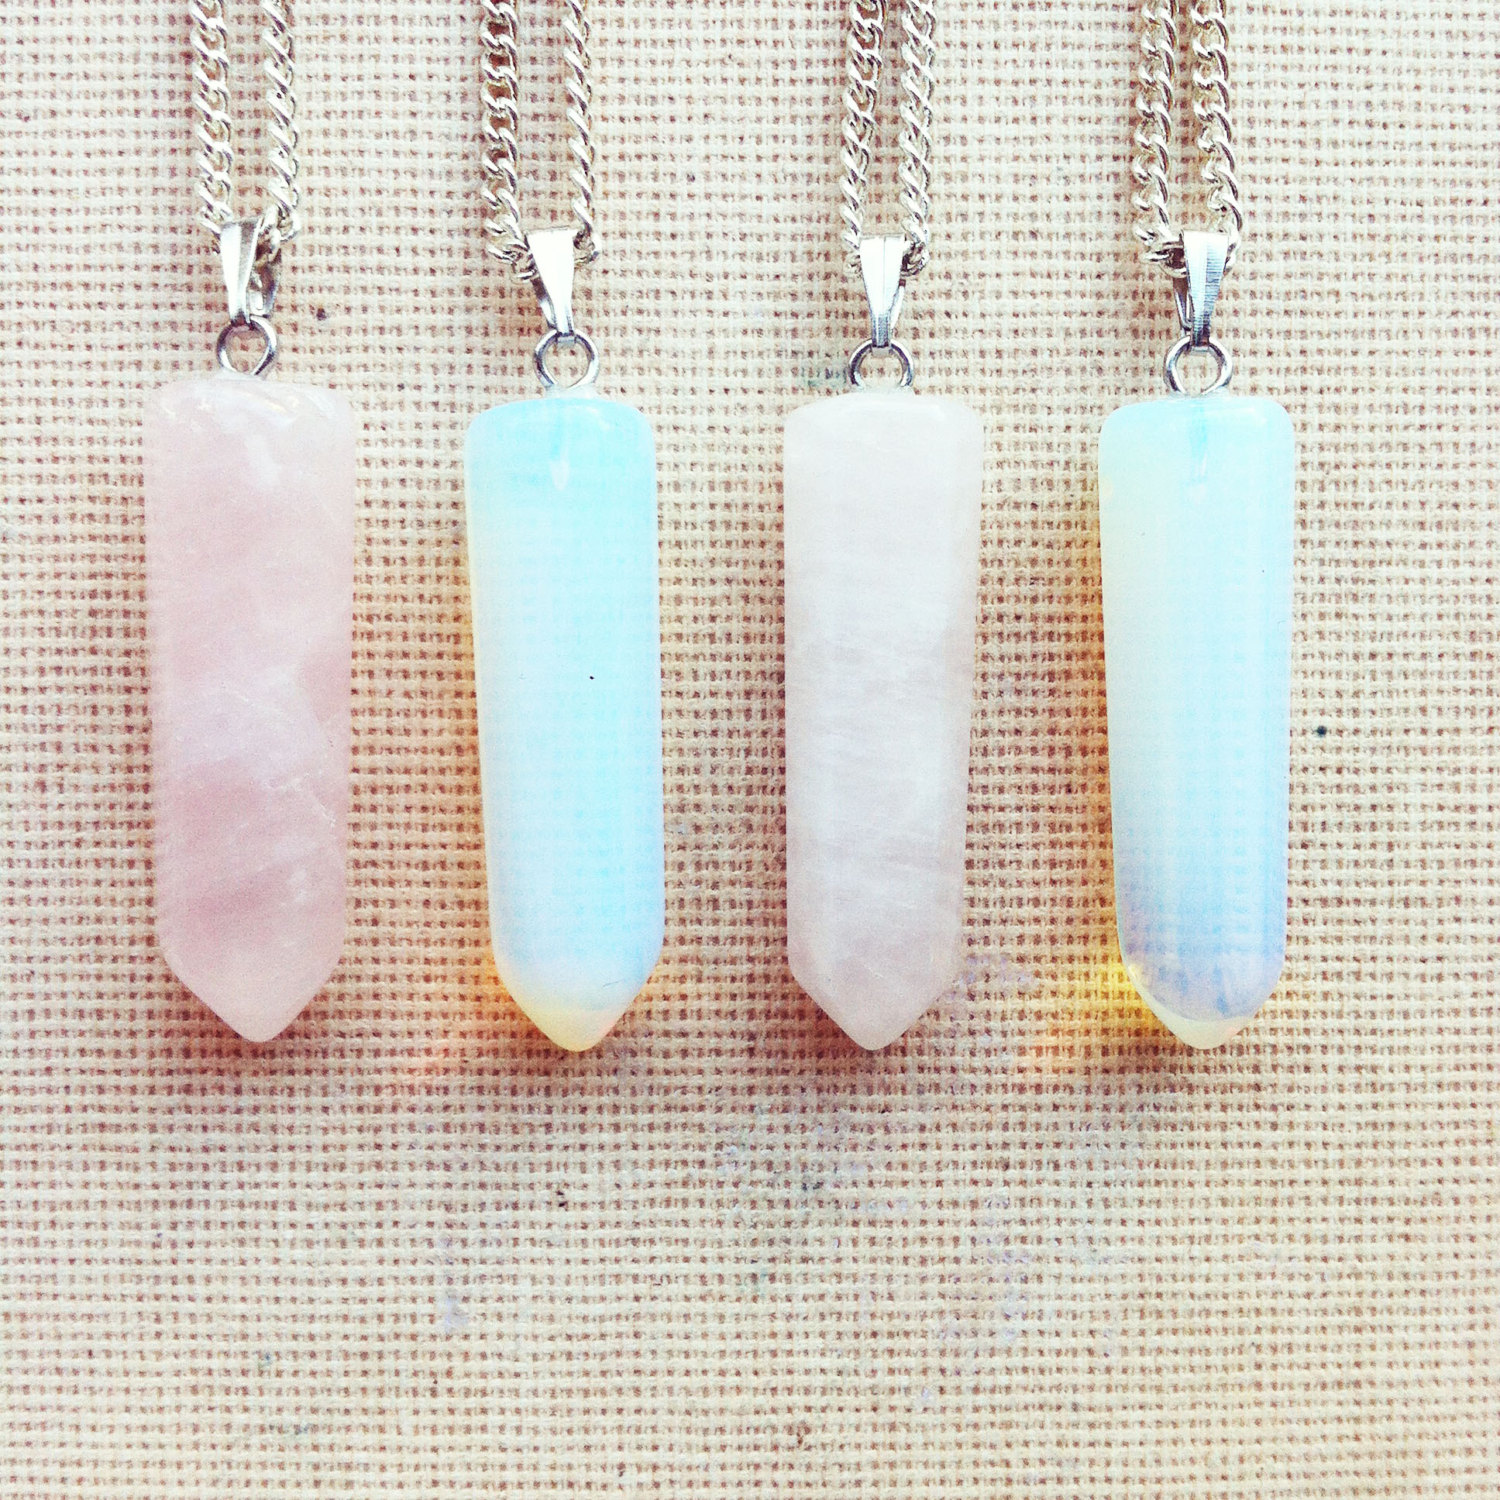 Gemstone Necklace - Point Necklace Moonstone Necklace Pink Quartz Necklace Birthstone Necklace Hexagon Pendant Boho Necklace FREE SHIPPING